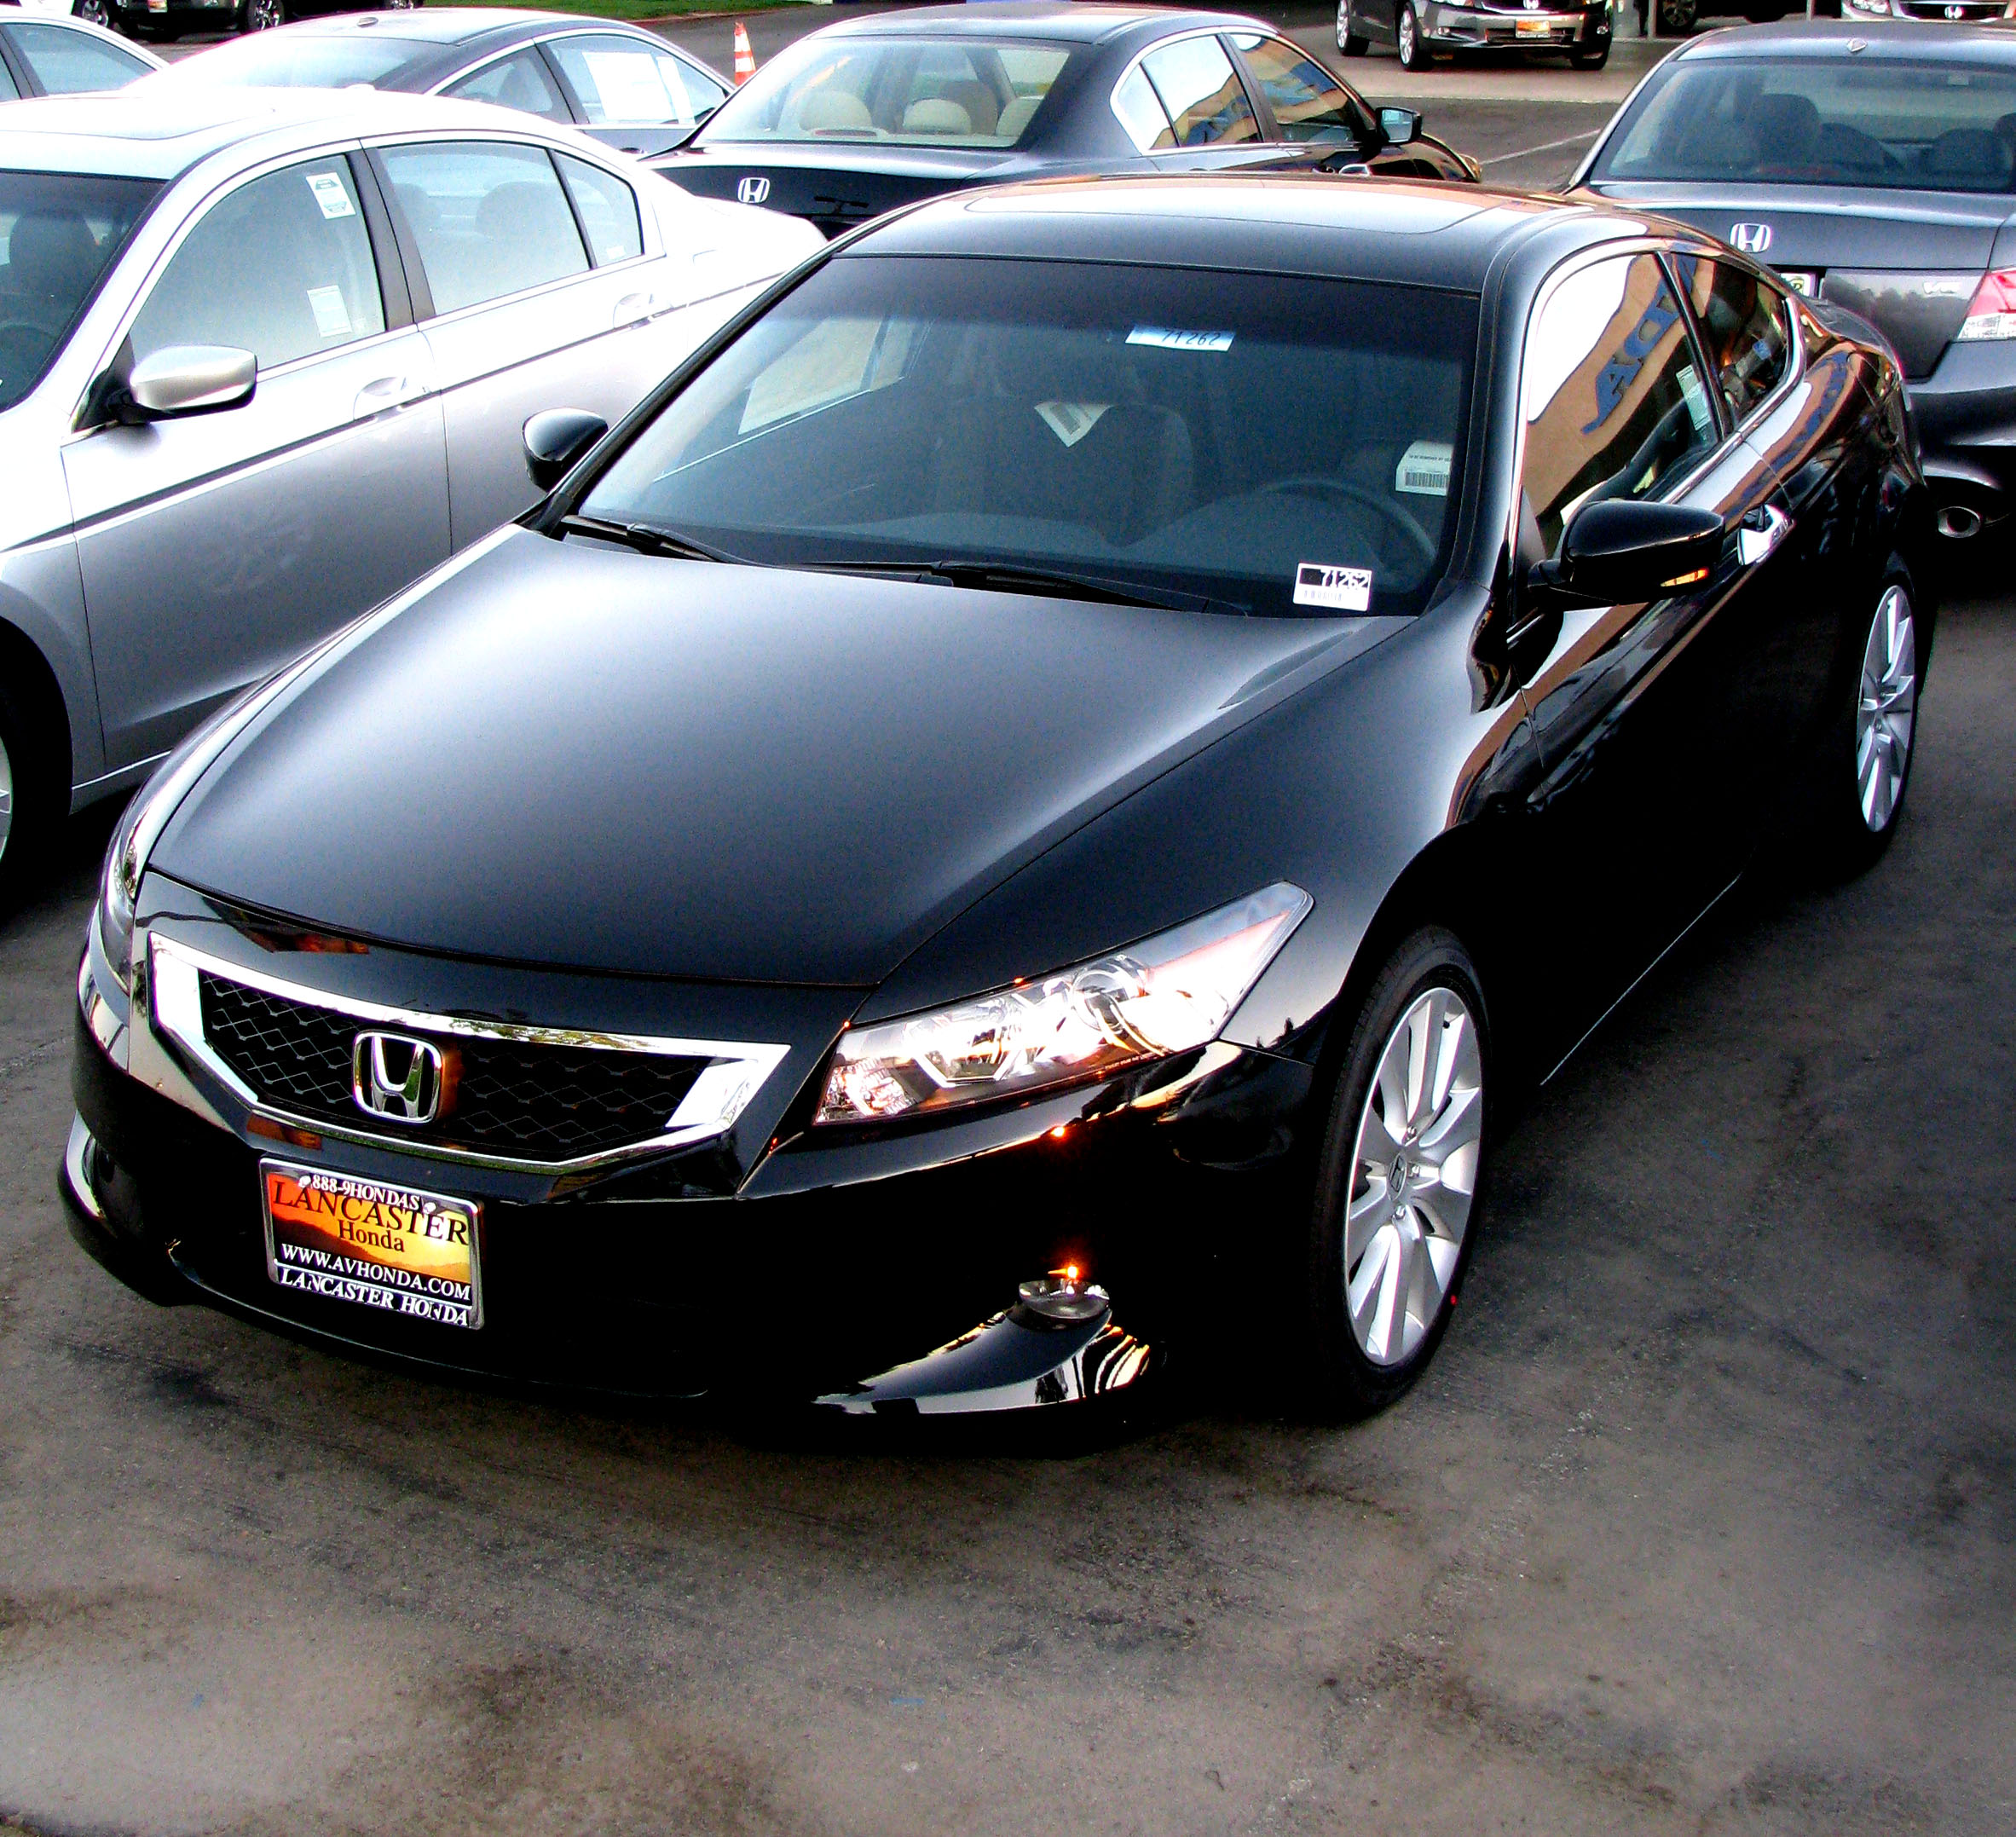 Honda Accord Lx >> File:2009 Honda Accord (2954587219).jpg